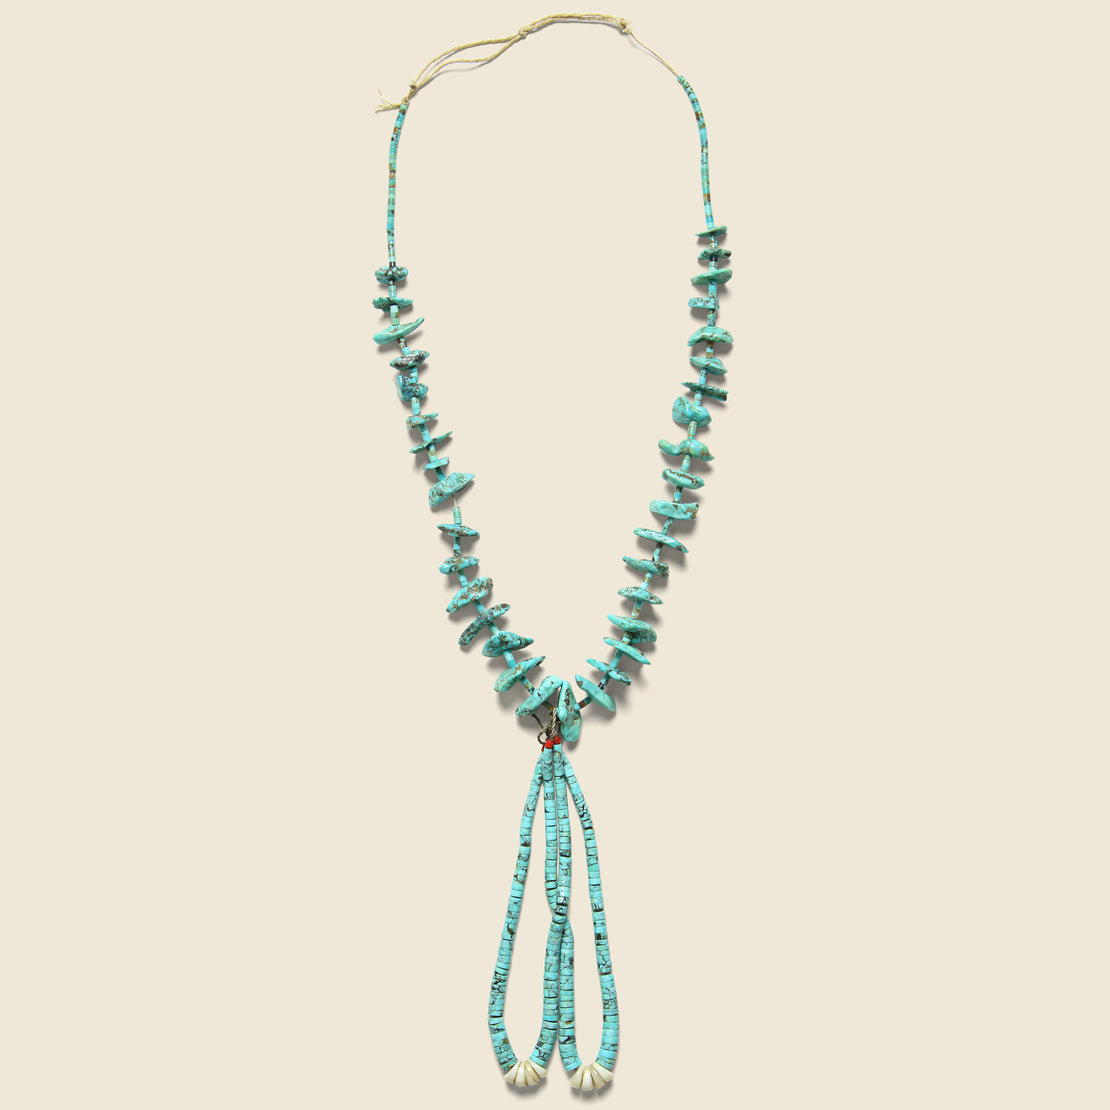 Vintage 20th Century Jacla Necklace - Turquoise